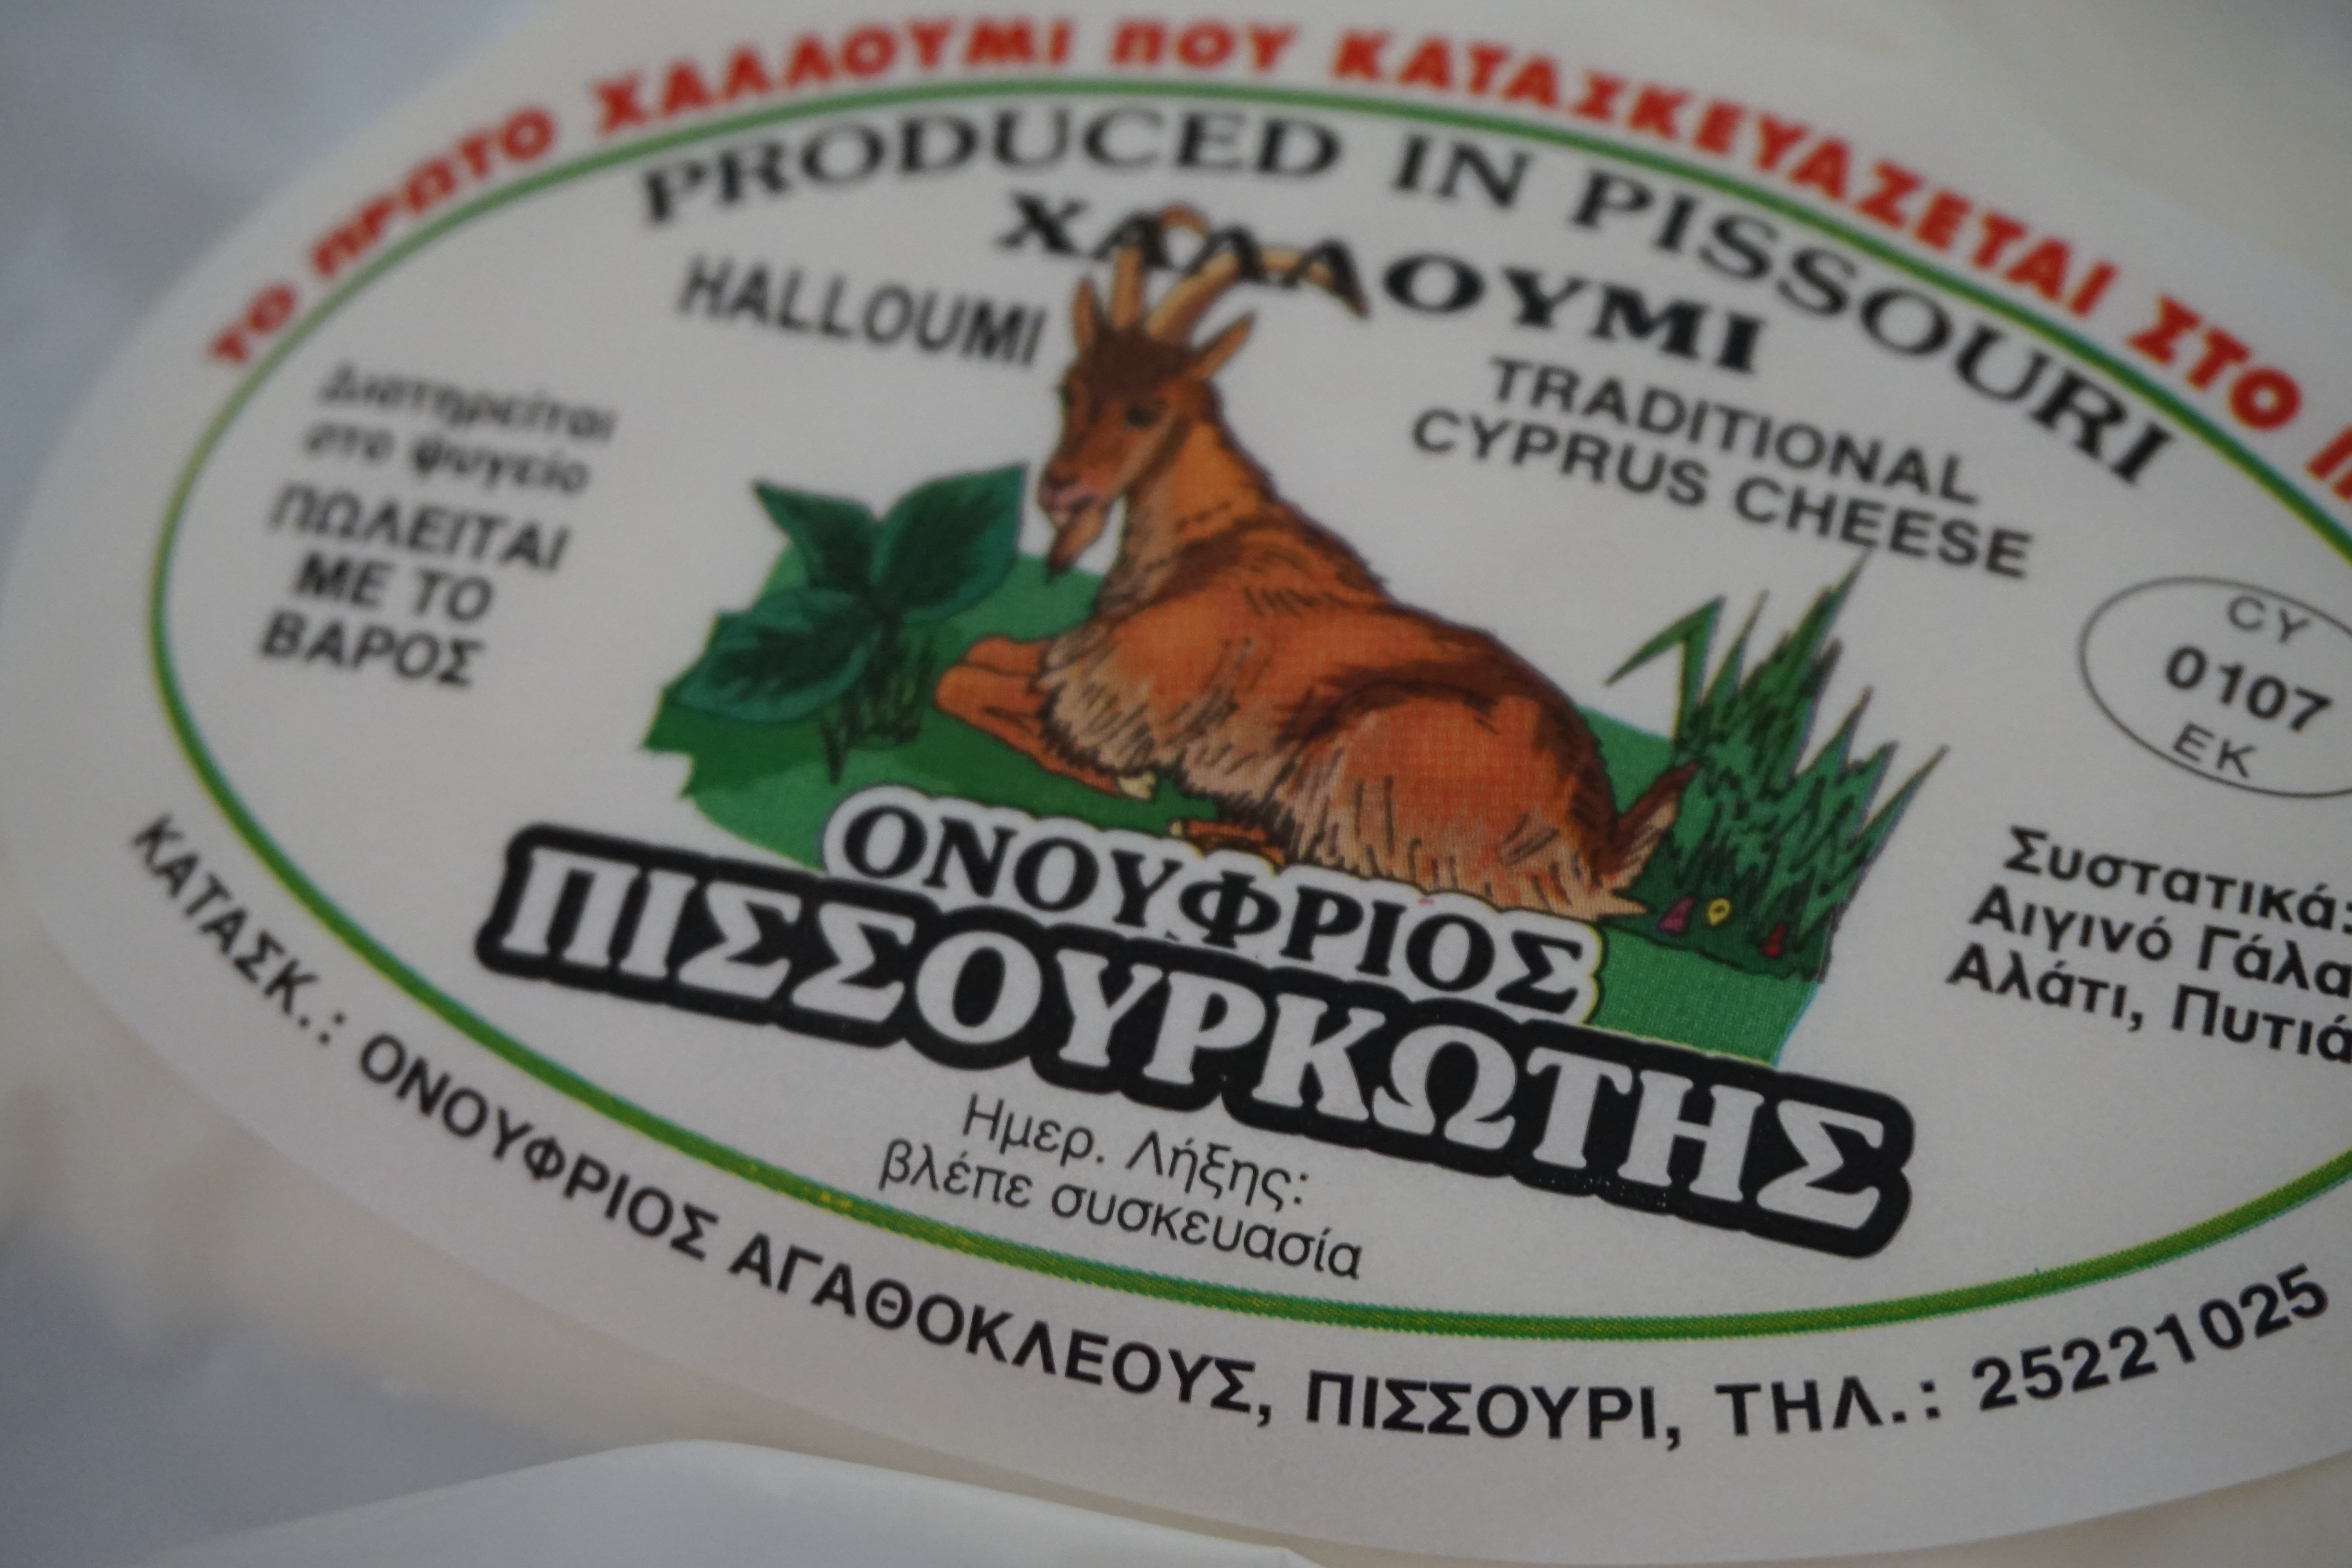 What can you do in Cyprus? Eat Cypriot Halloumi.